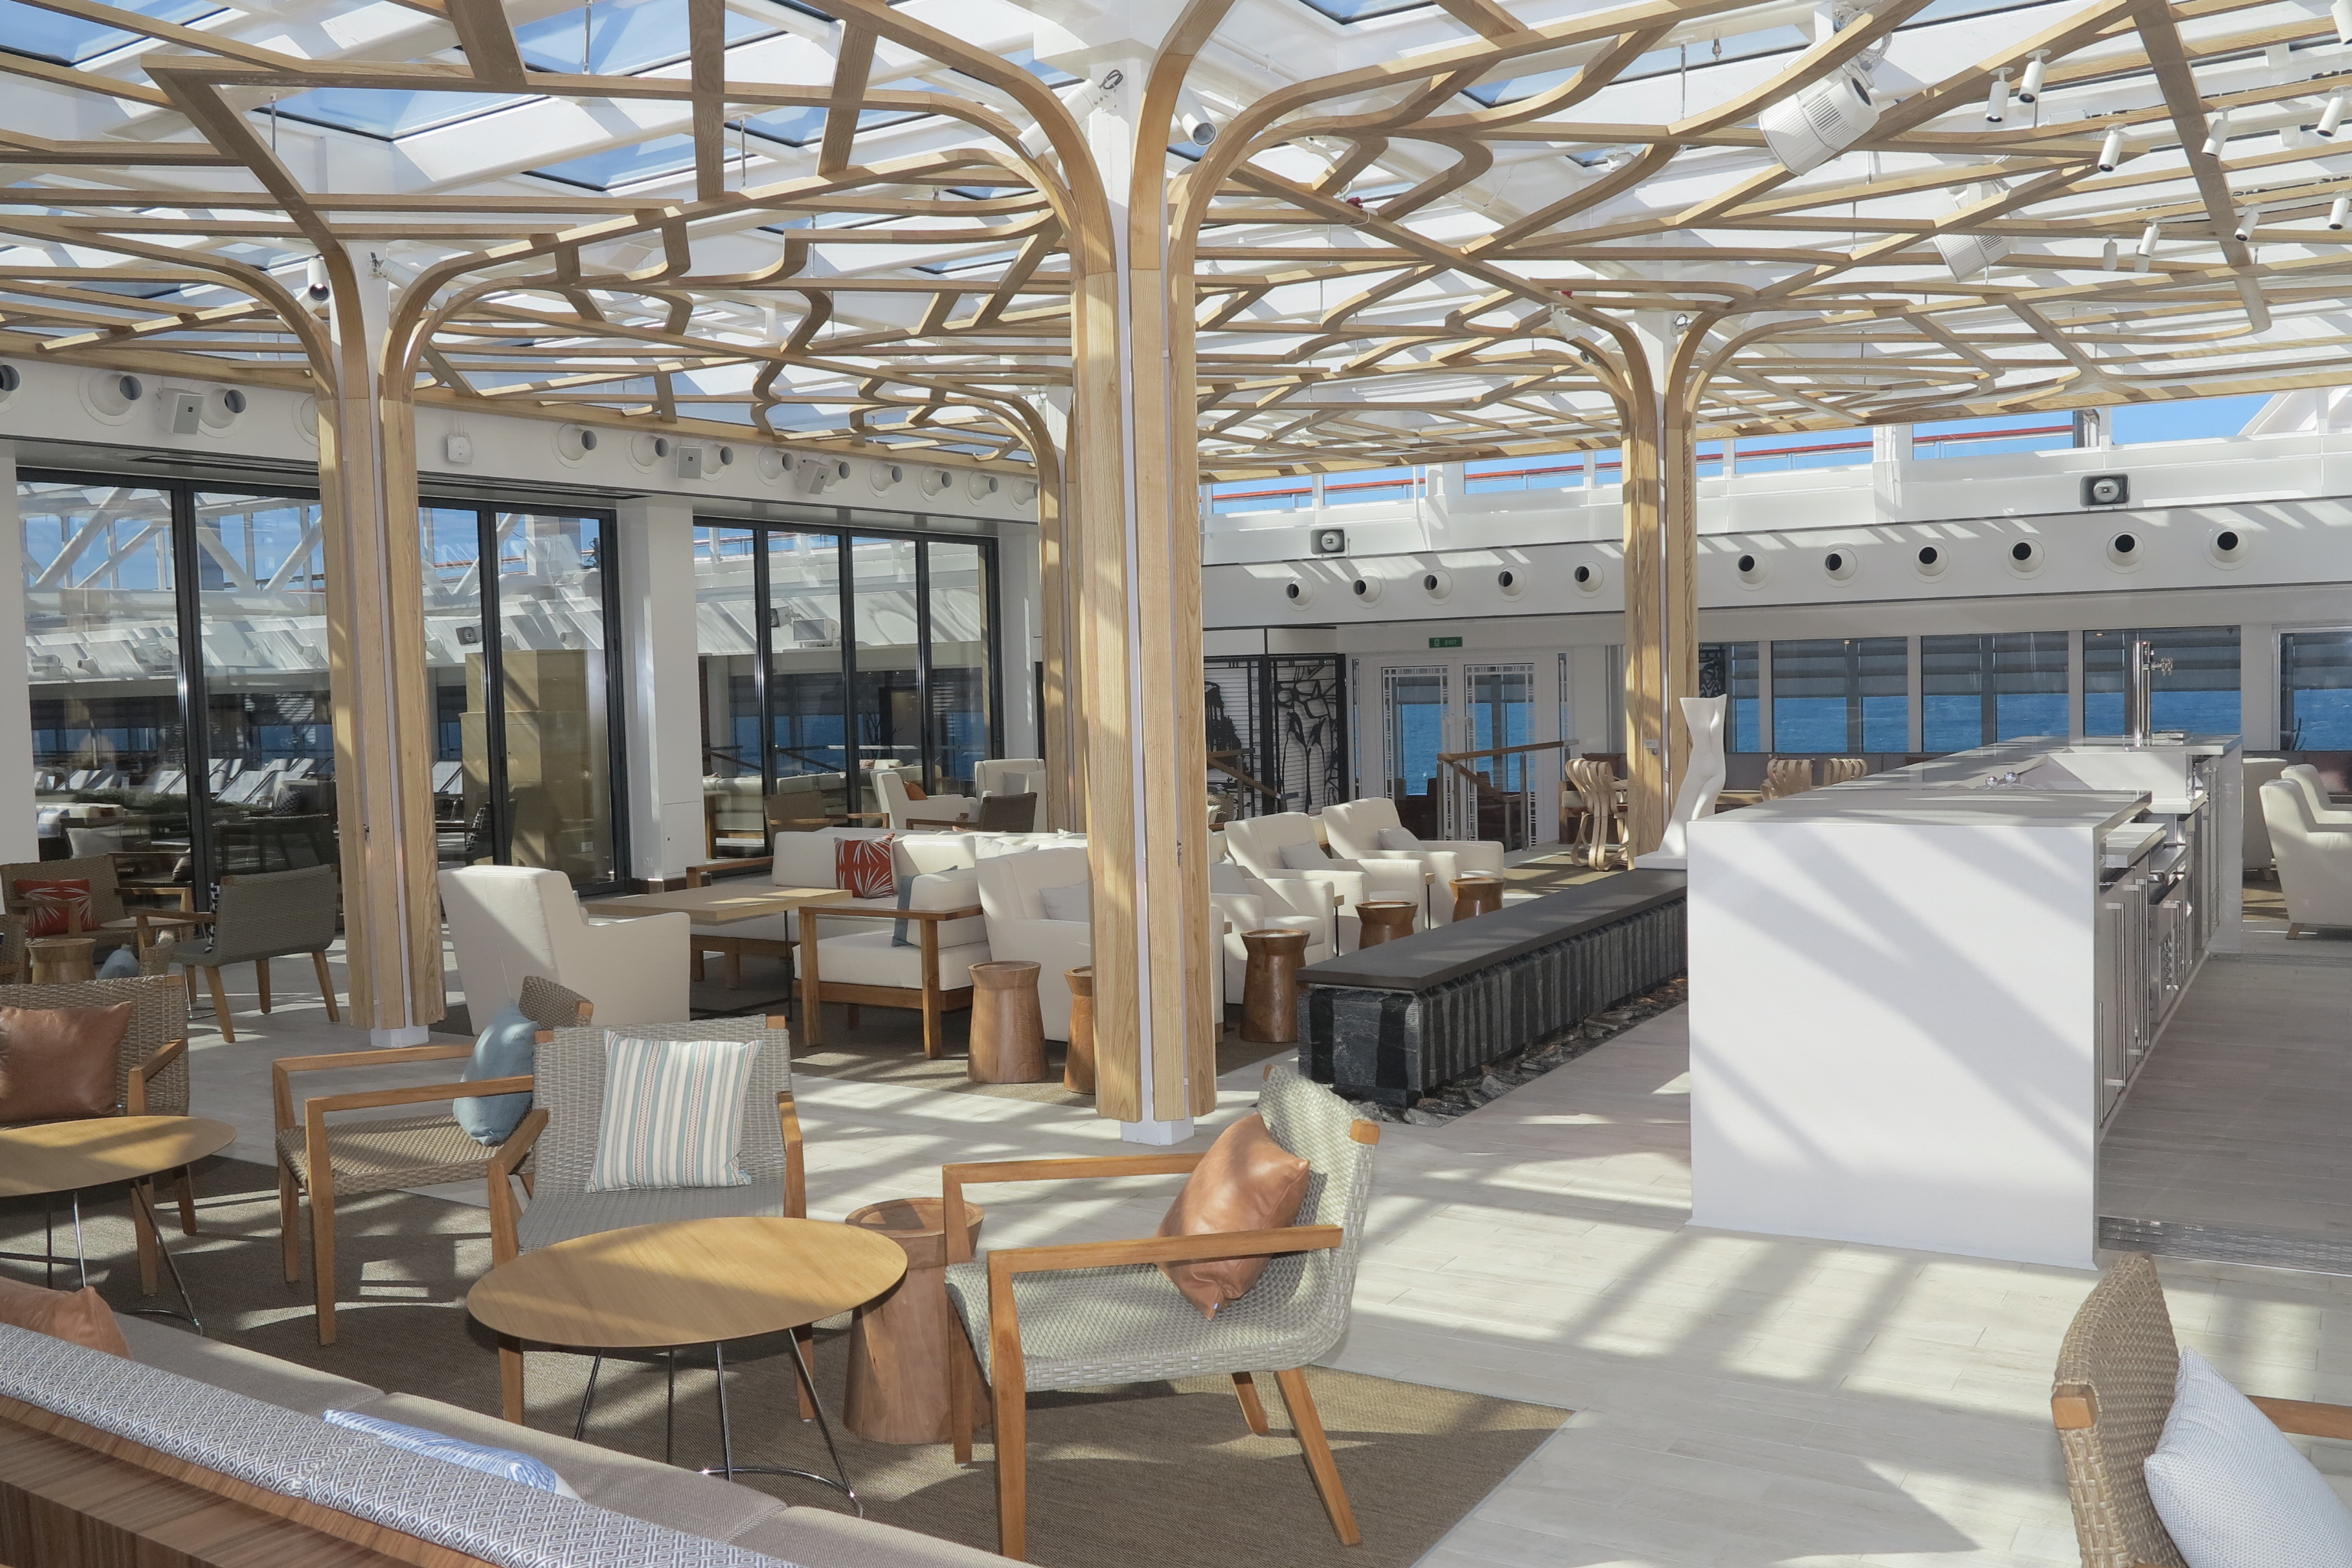 Traditional: The Wintergarden serves afternoon tea